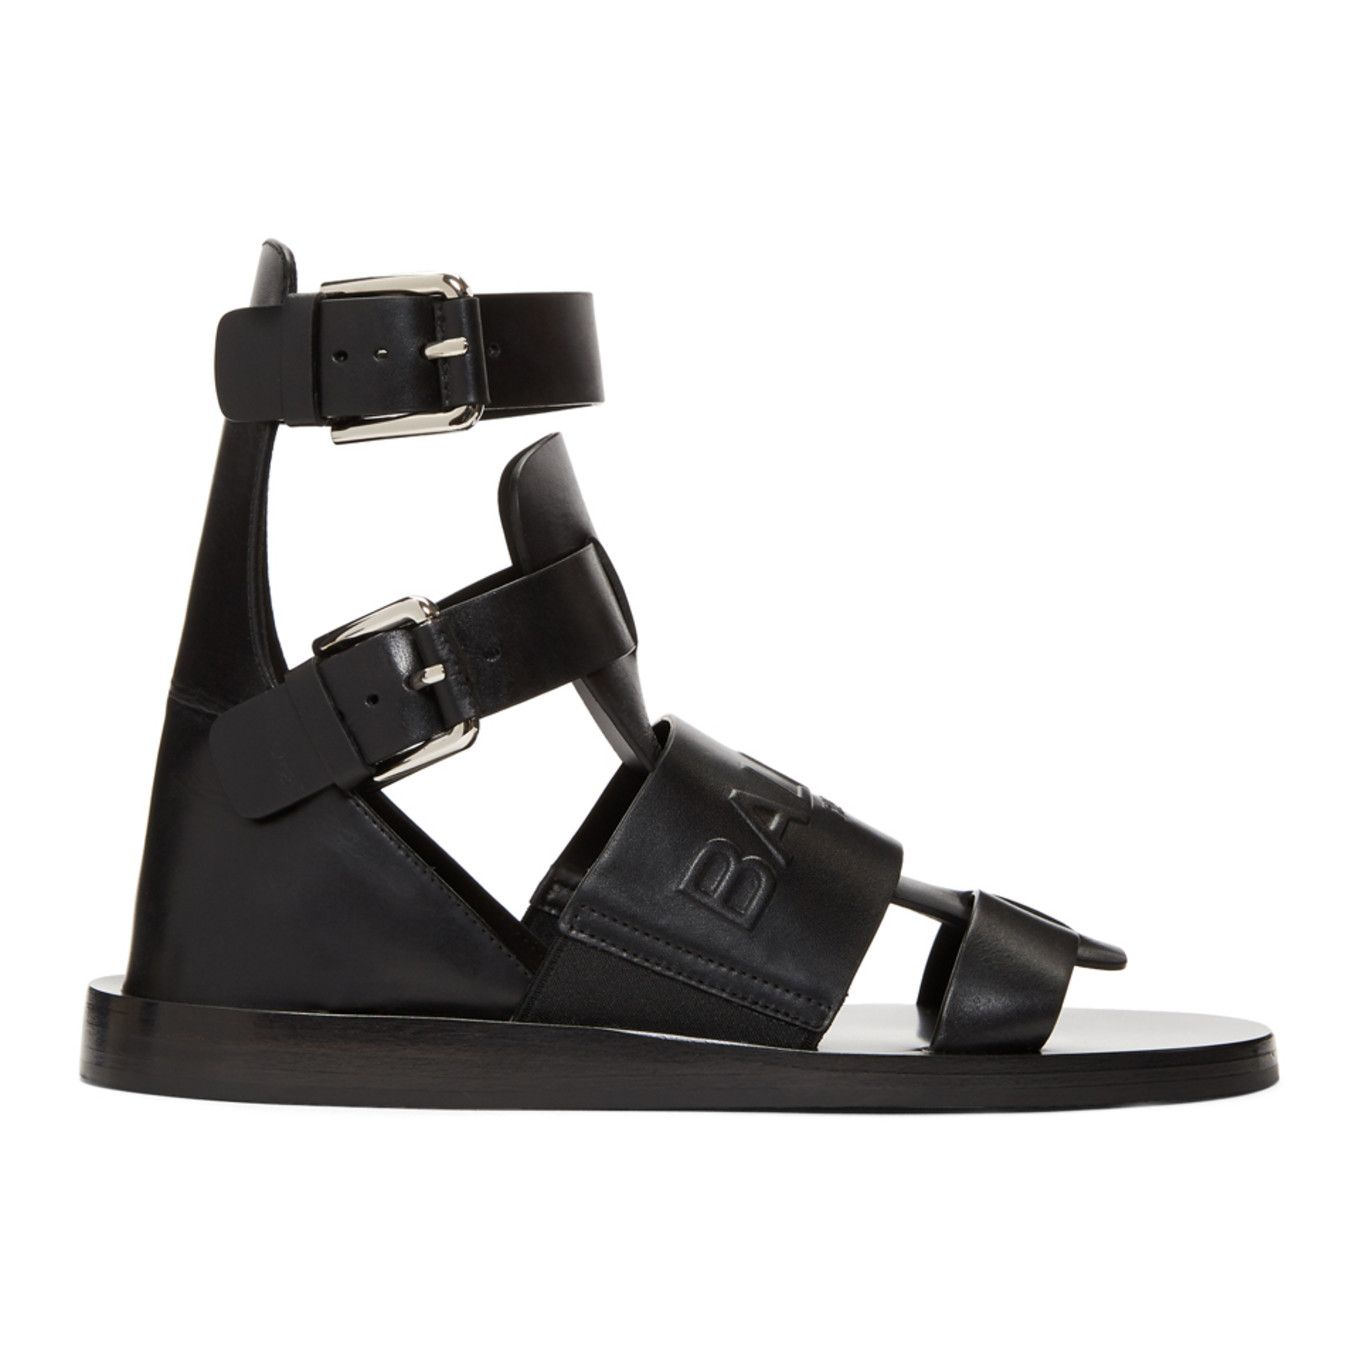 78b24ad28007 Balmain - Black Chris Embossed Logo Sandals Gladiator Sandals